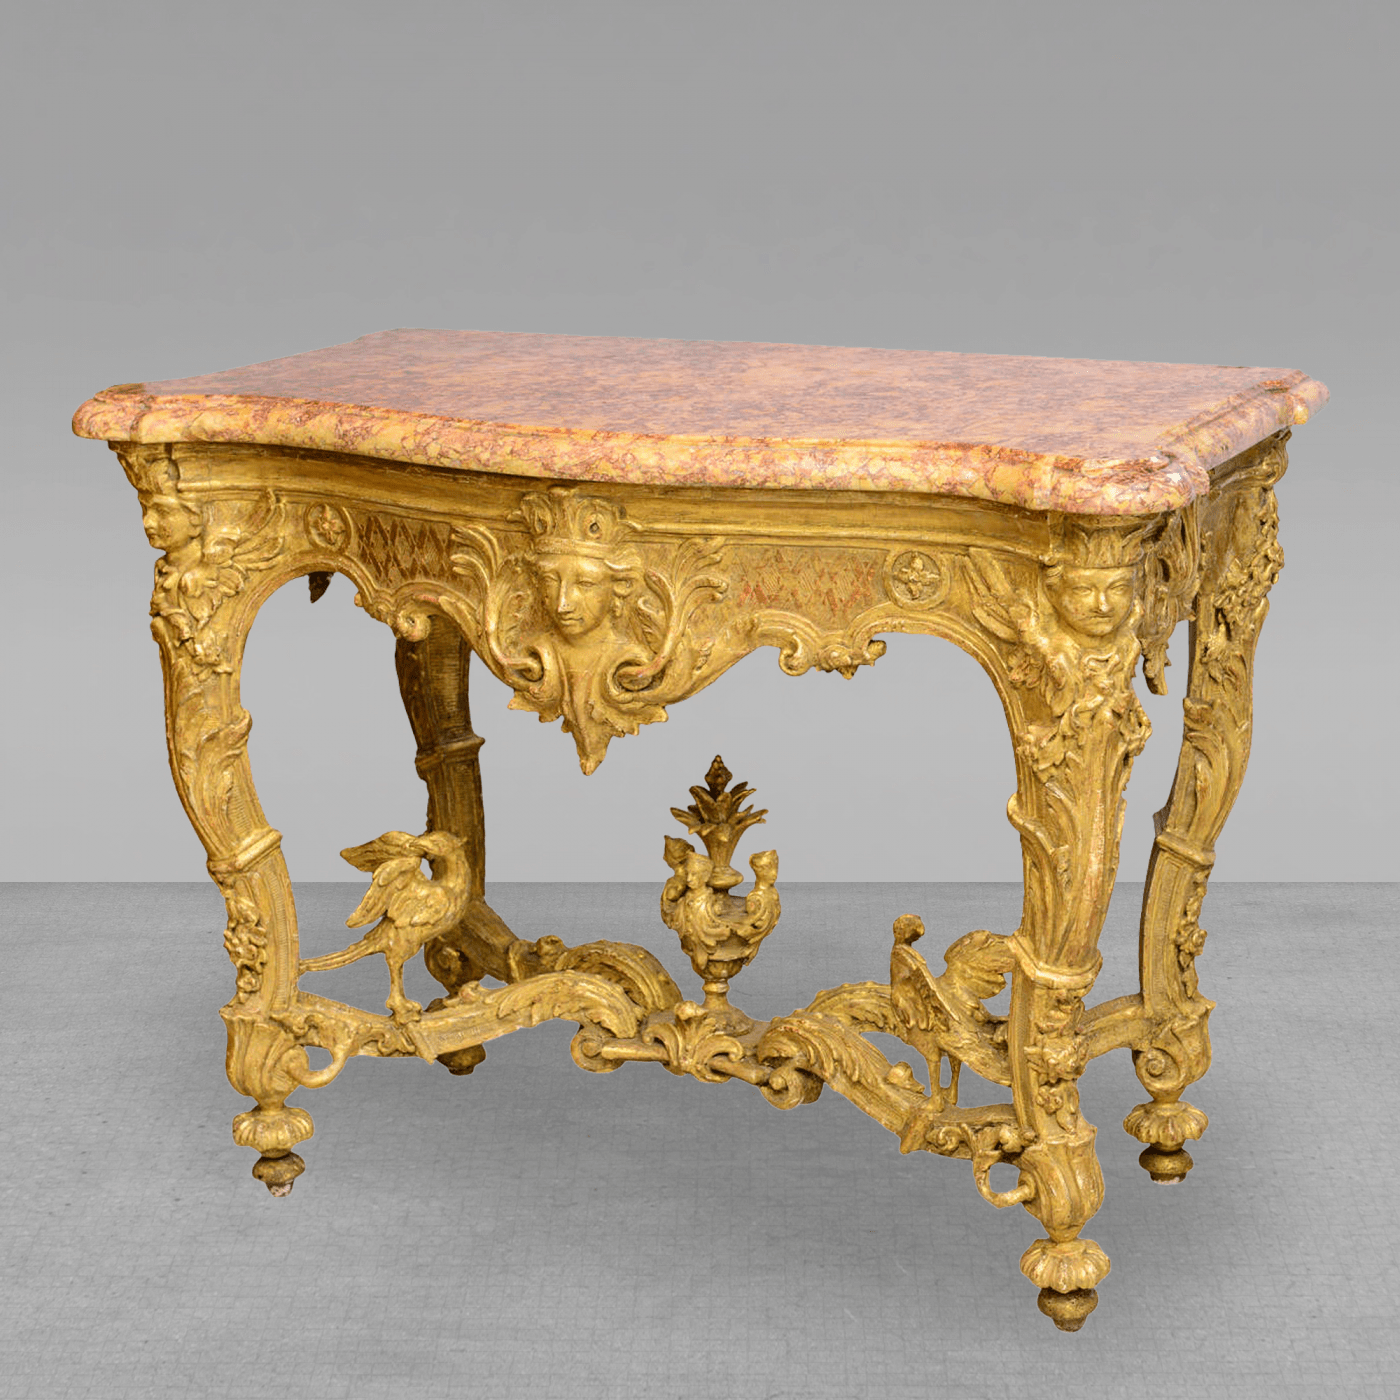 Fine Regence Or Early Louis XV Giltwood And Marble Top